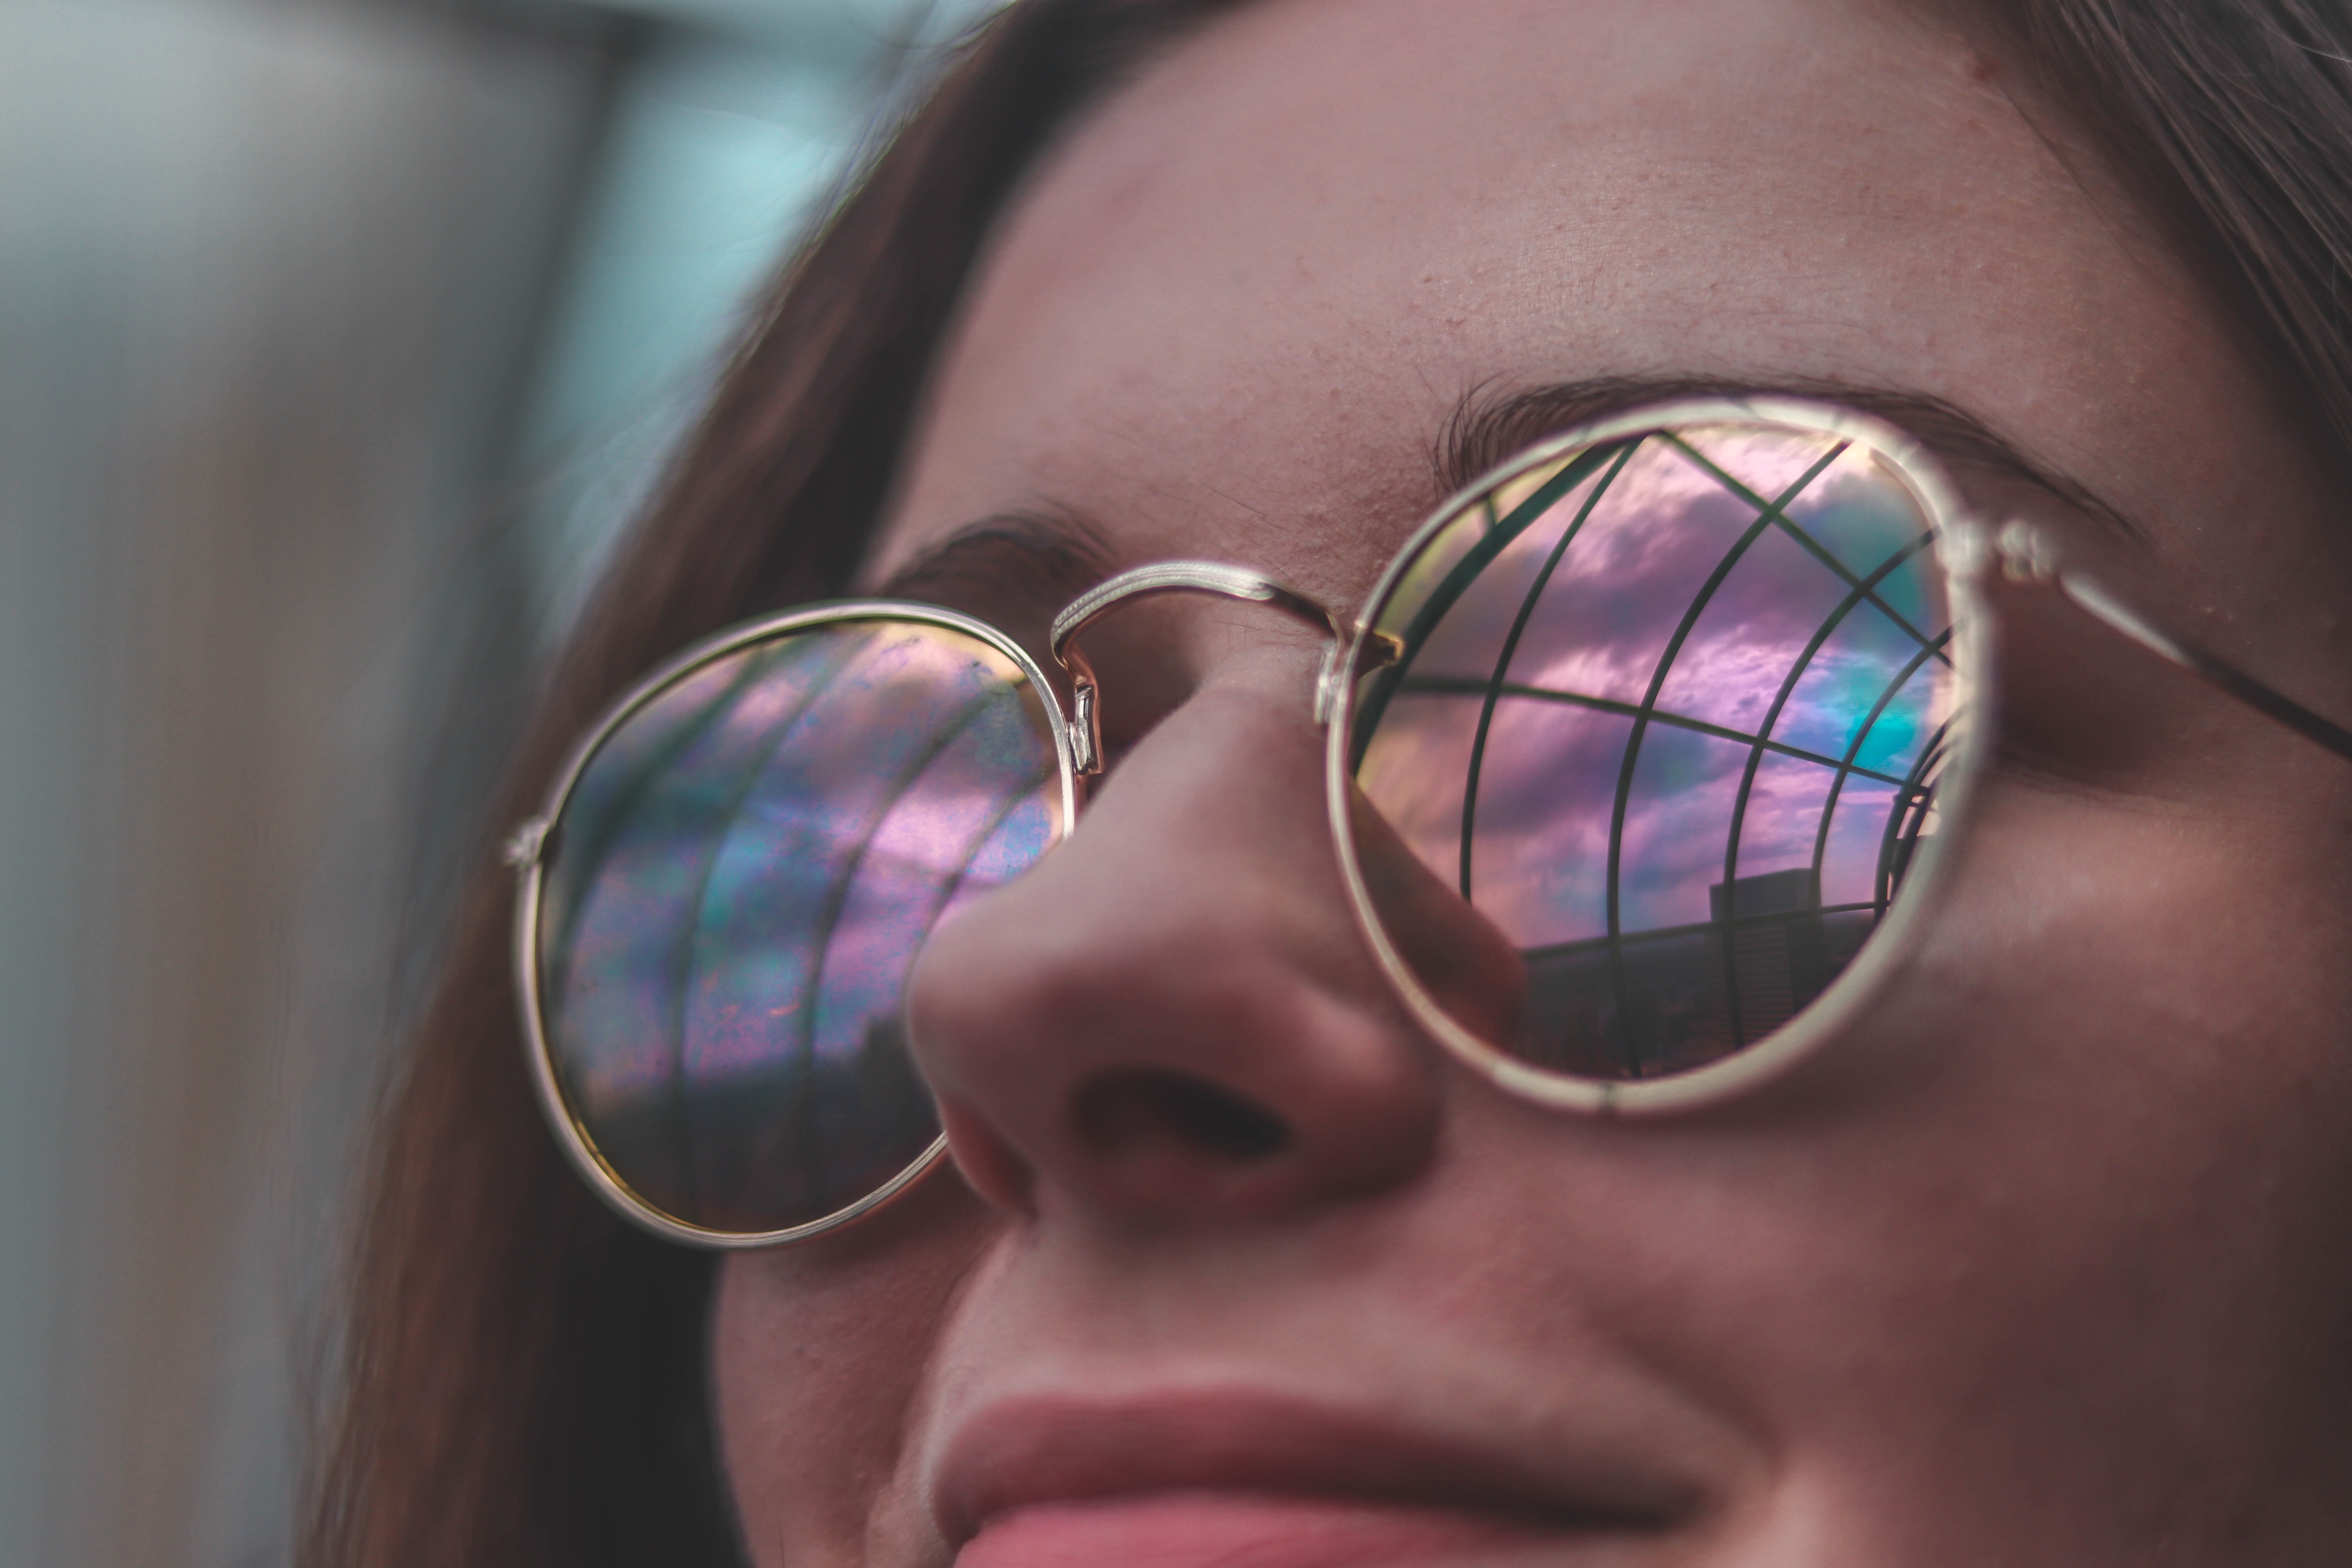 woman wearing sunglasses while smiling